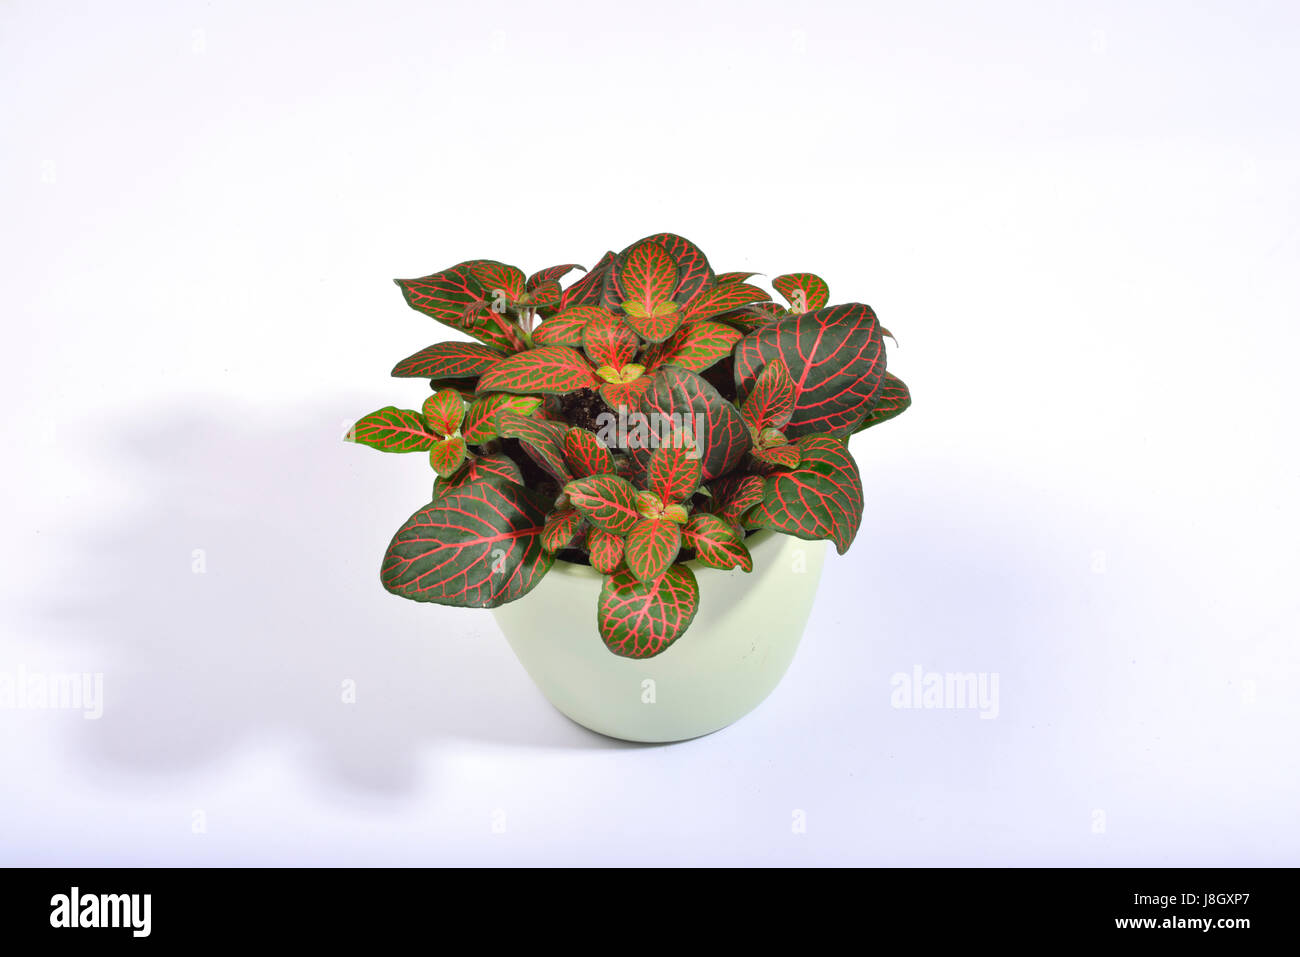 A potted fittonia with red veined dark green leaves on a clear white background. - Stock Image